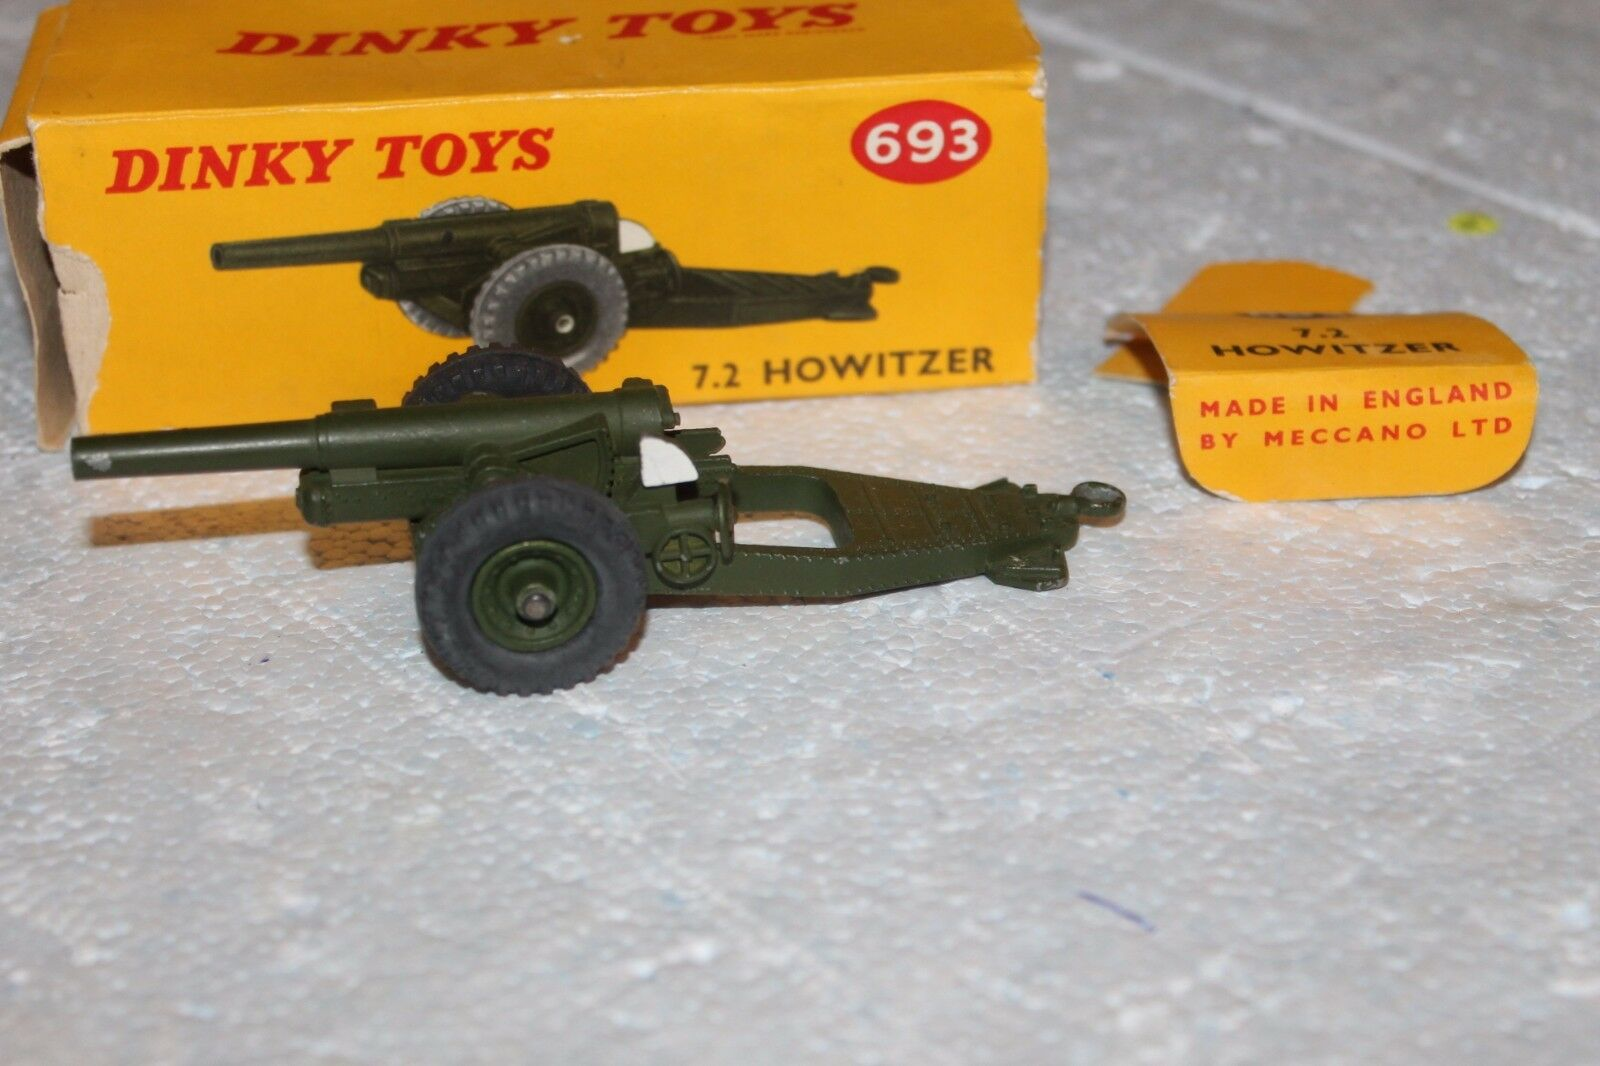 MILITARY DINKY by MECCANO      693 693 693      7.2 HOWITZER GUN   WITH ORIGIN BOX 7c1ef7